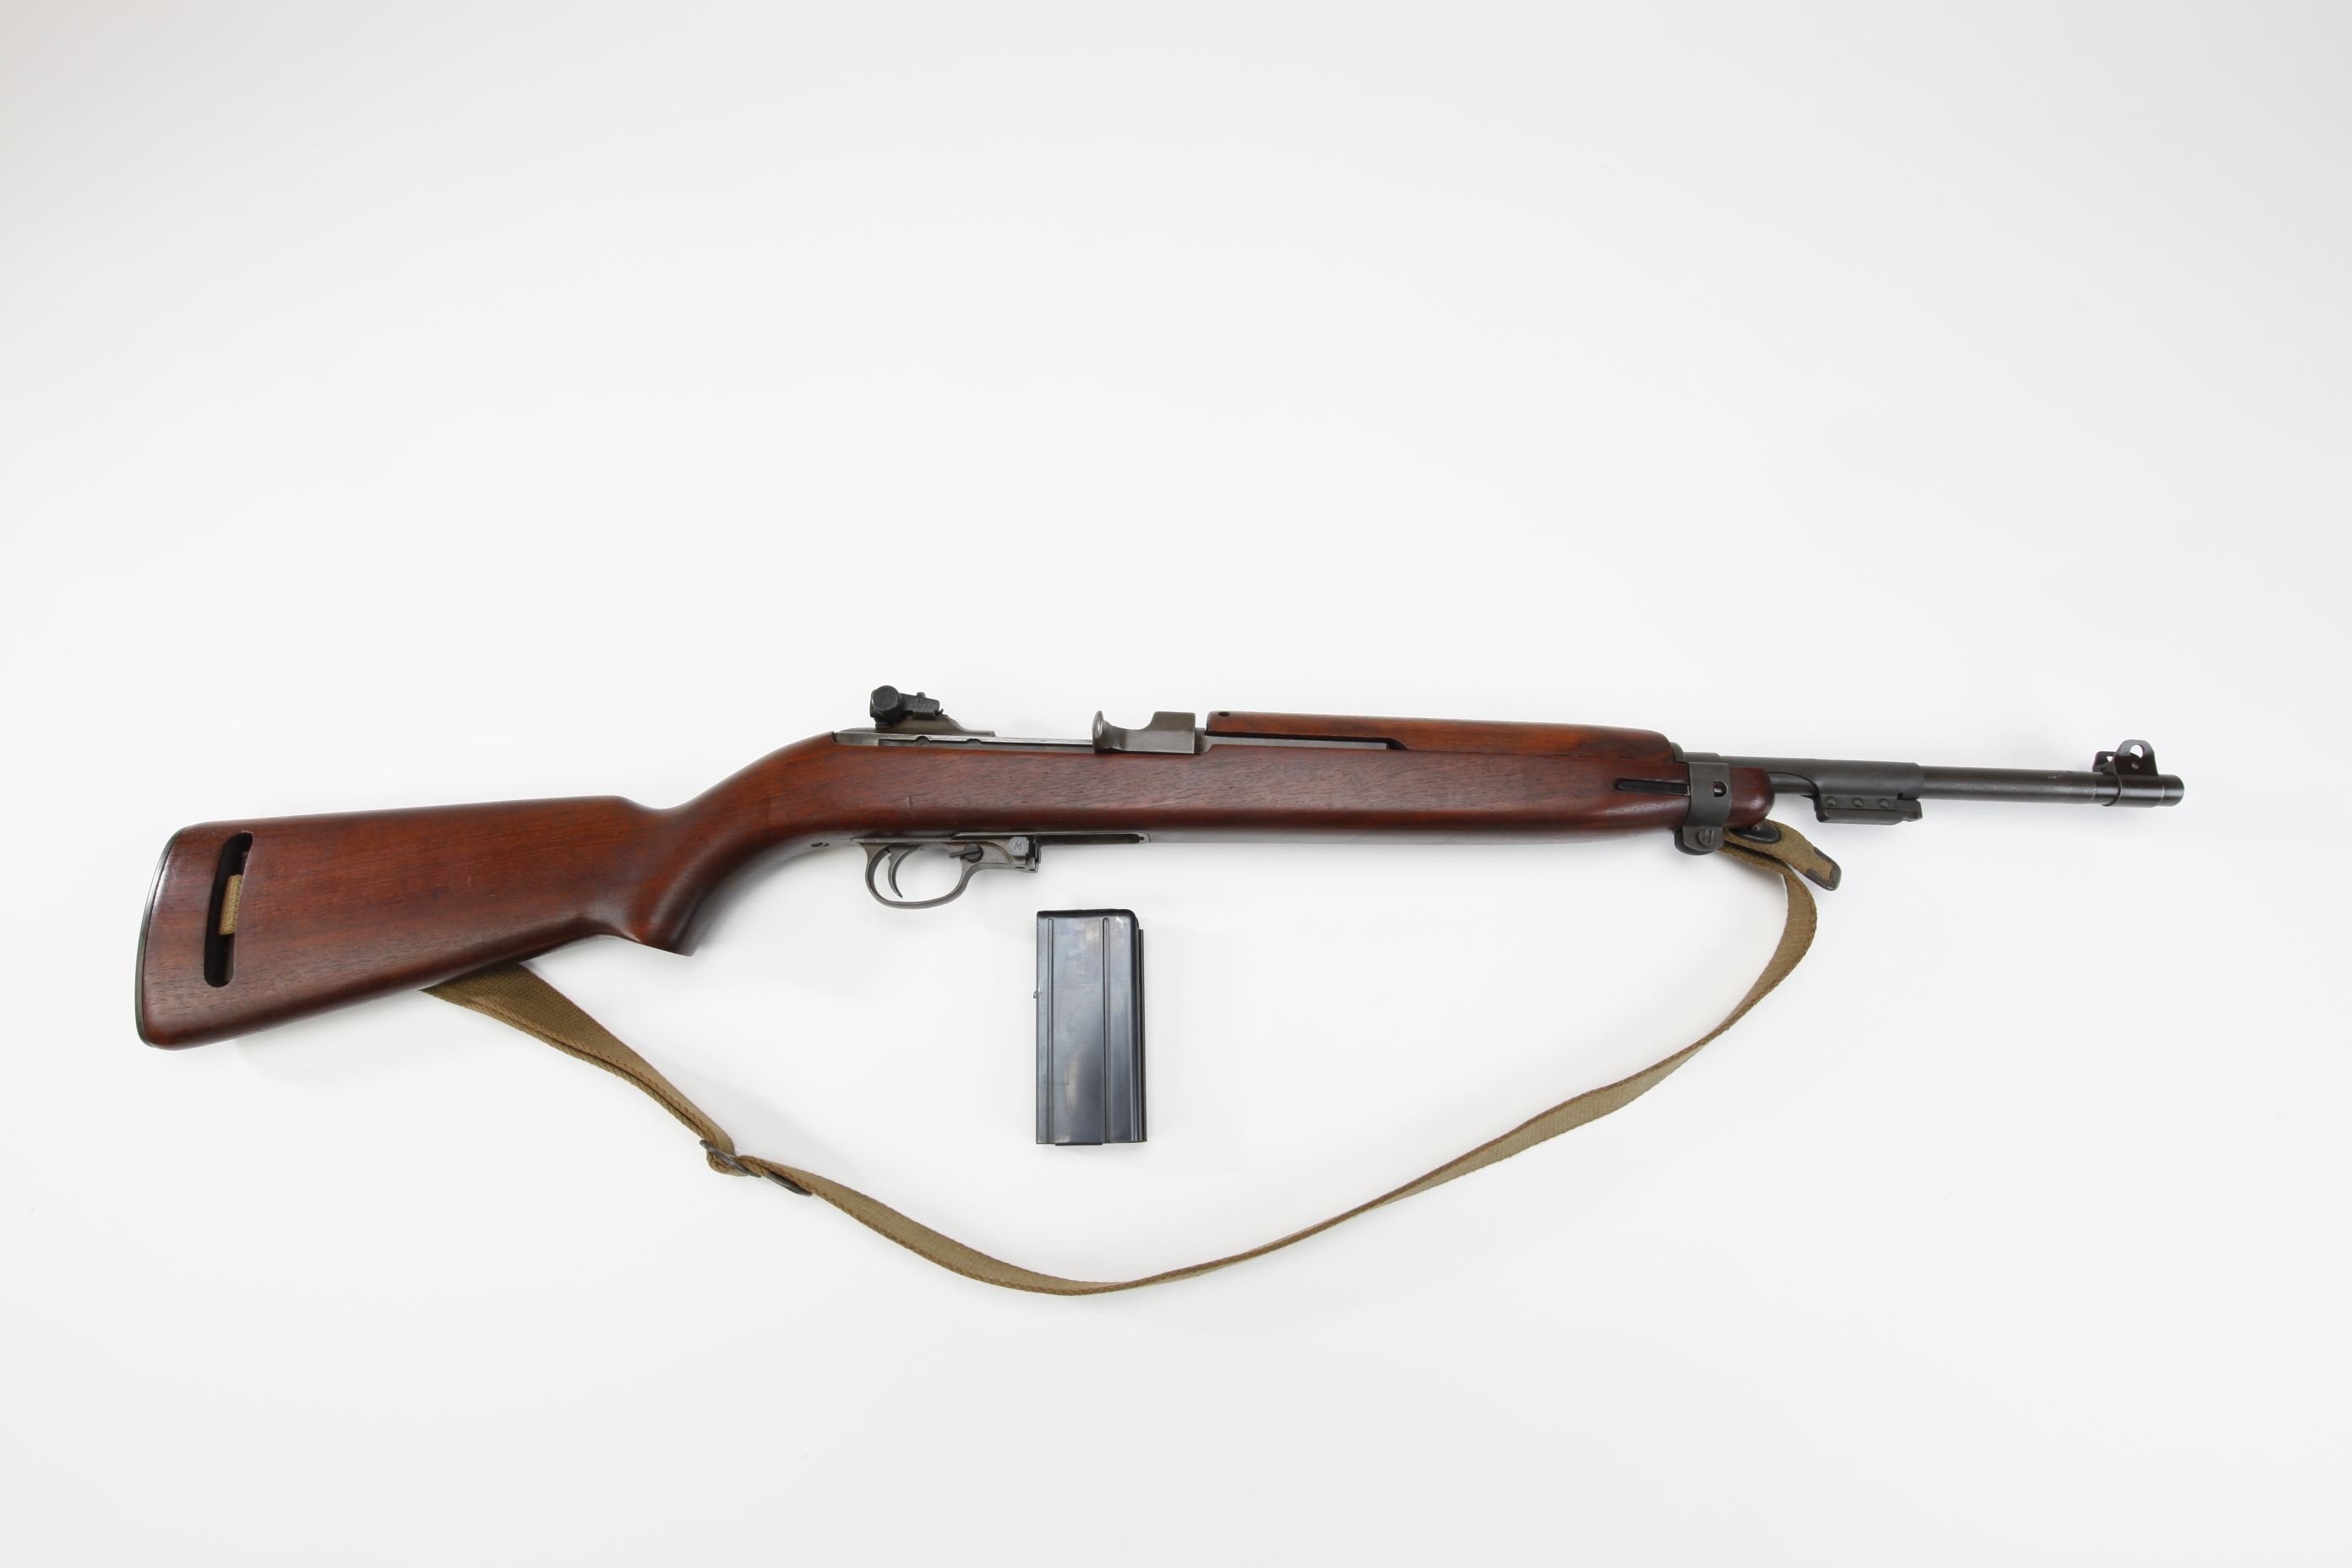 U.S. Underwood Elliot Fisher M1 Semi Automatic Carbine